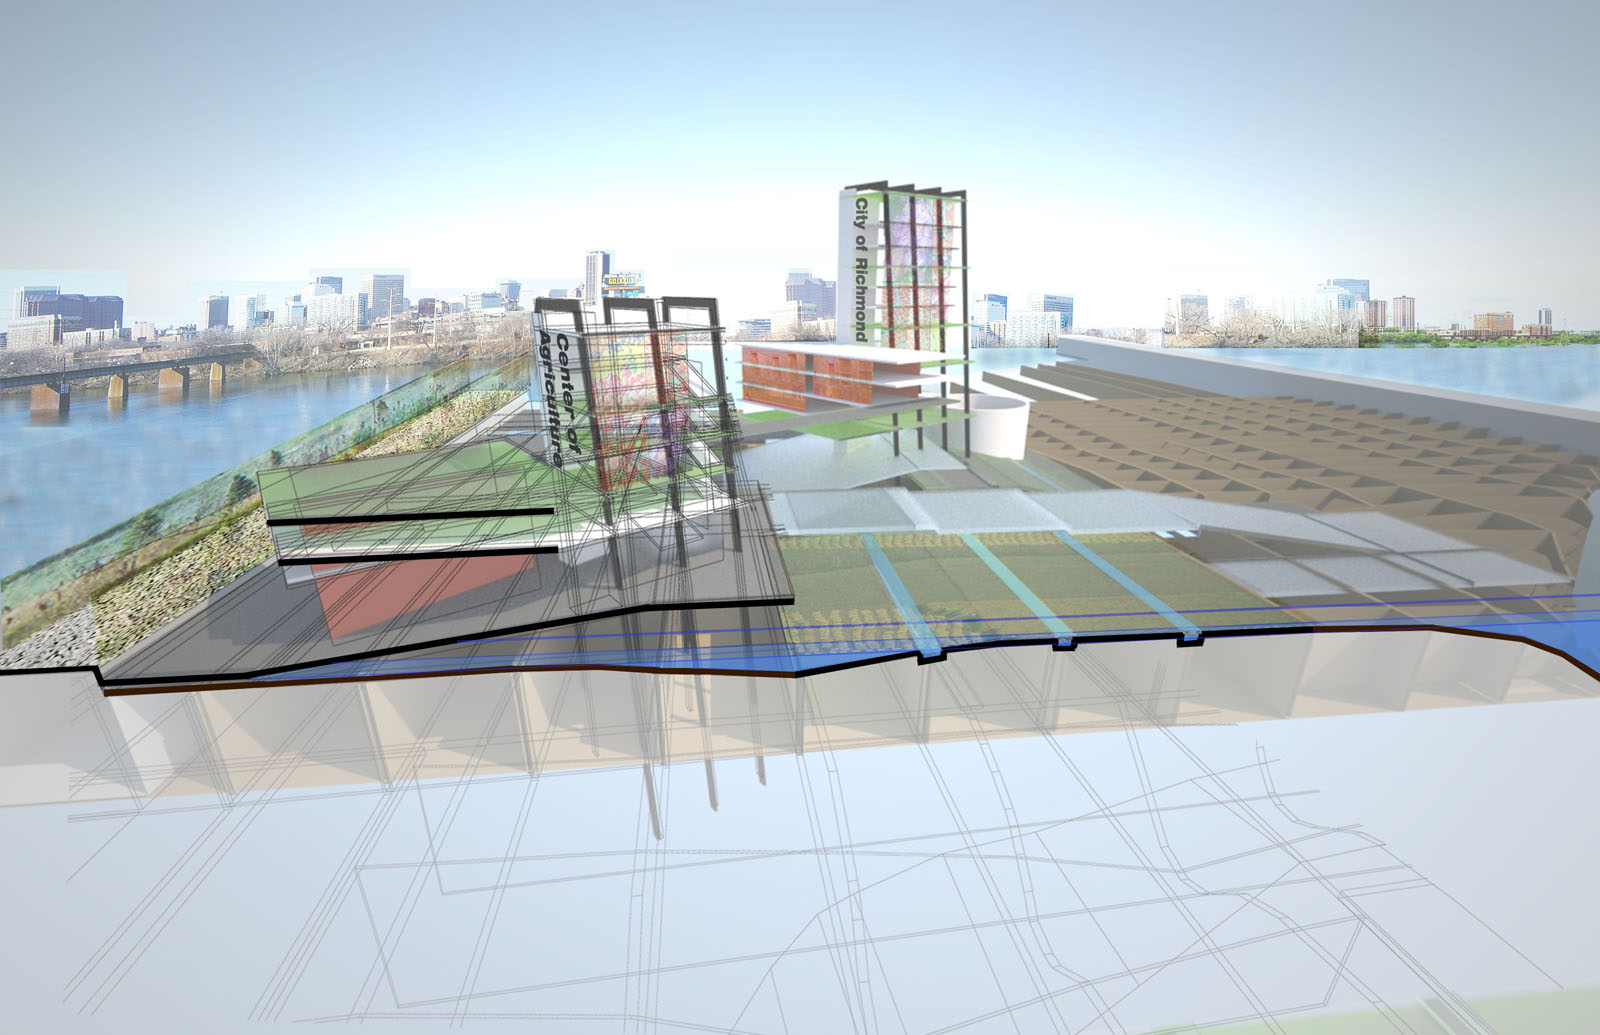 Reinventing The Urban River « Dripps Phinney Studio